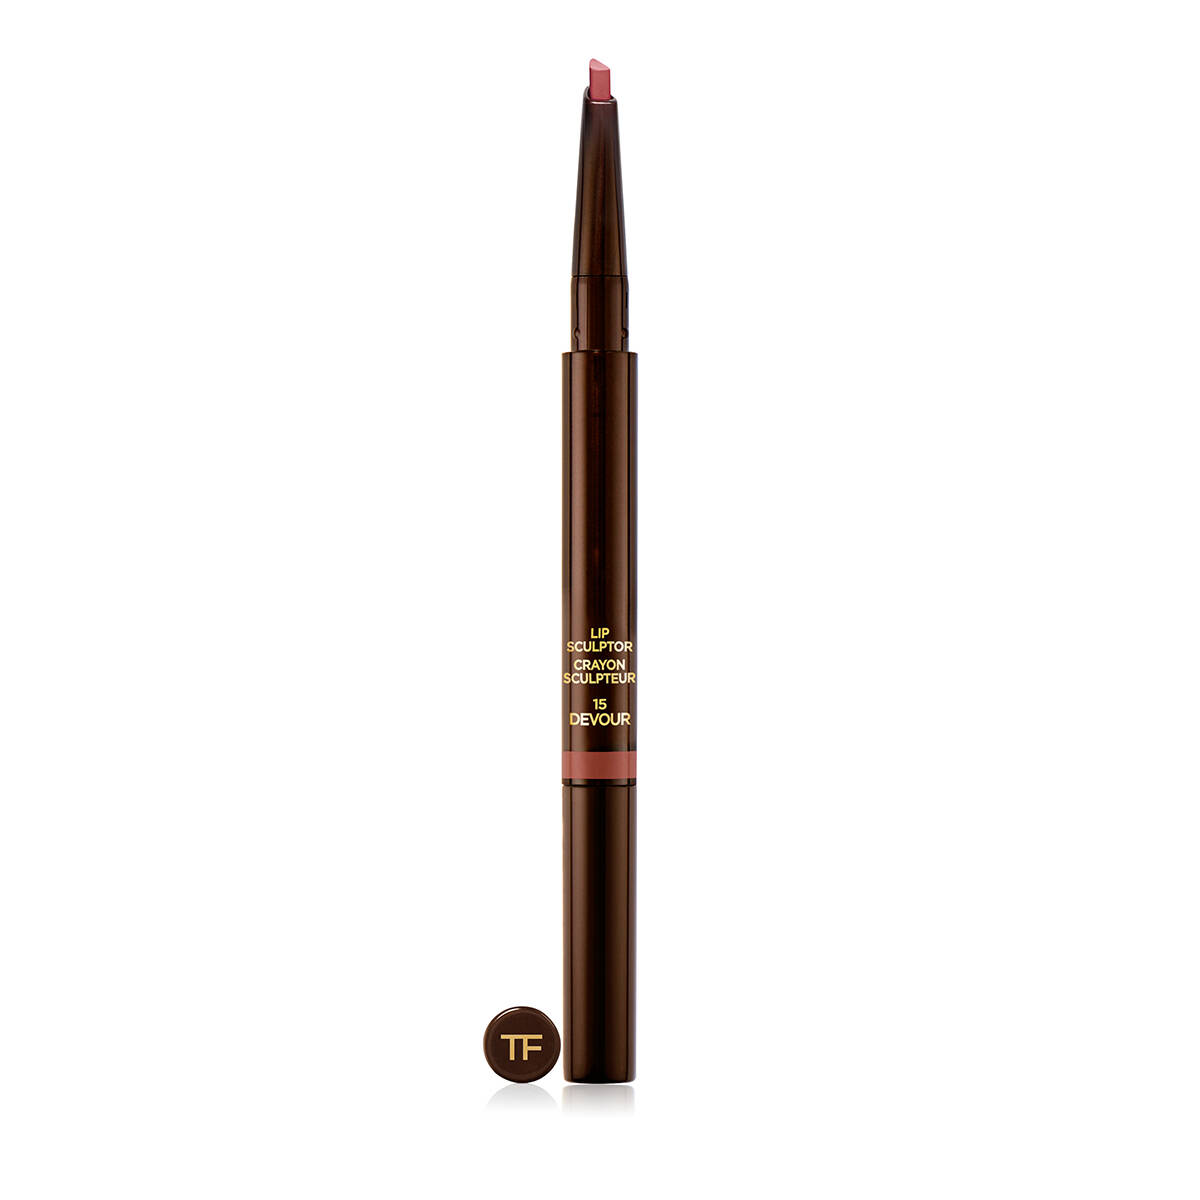 TOM FORD Lip Sculptor (15 Devour | 0,20g) Make Up, Lippen, Lipliner, Cosmetics, Lips von TOM FORD